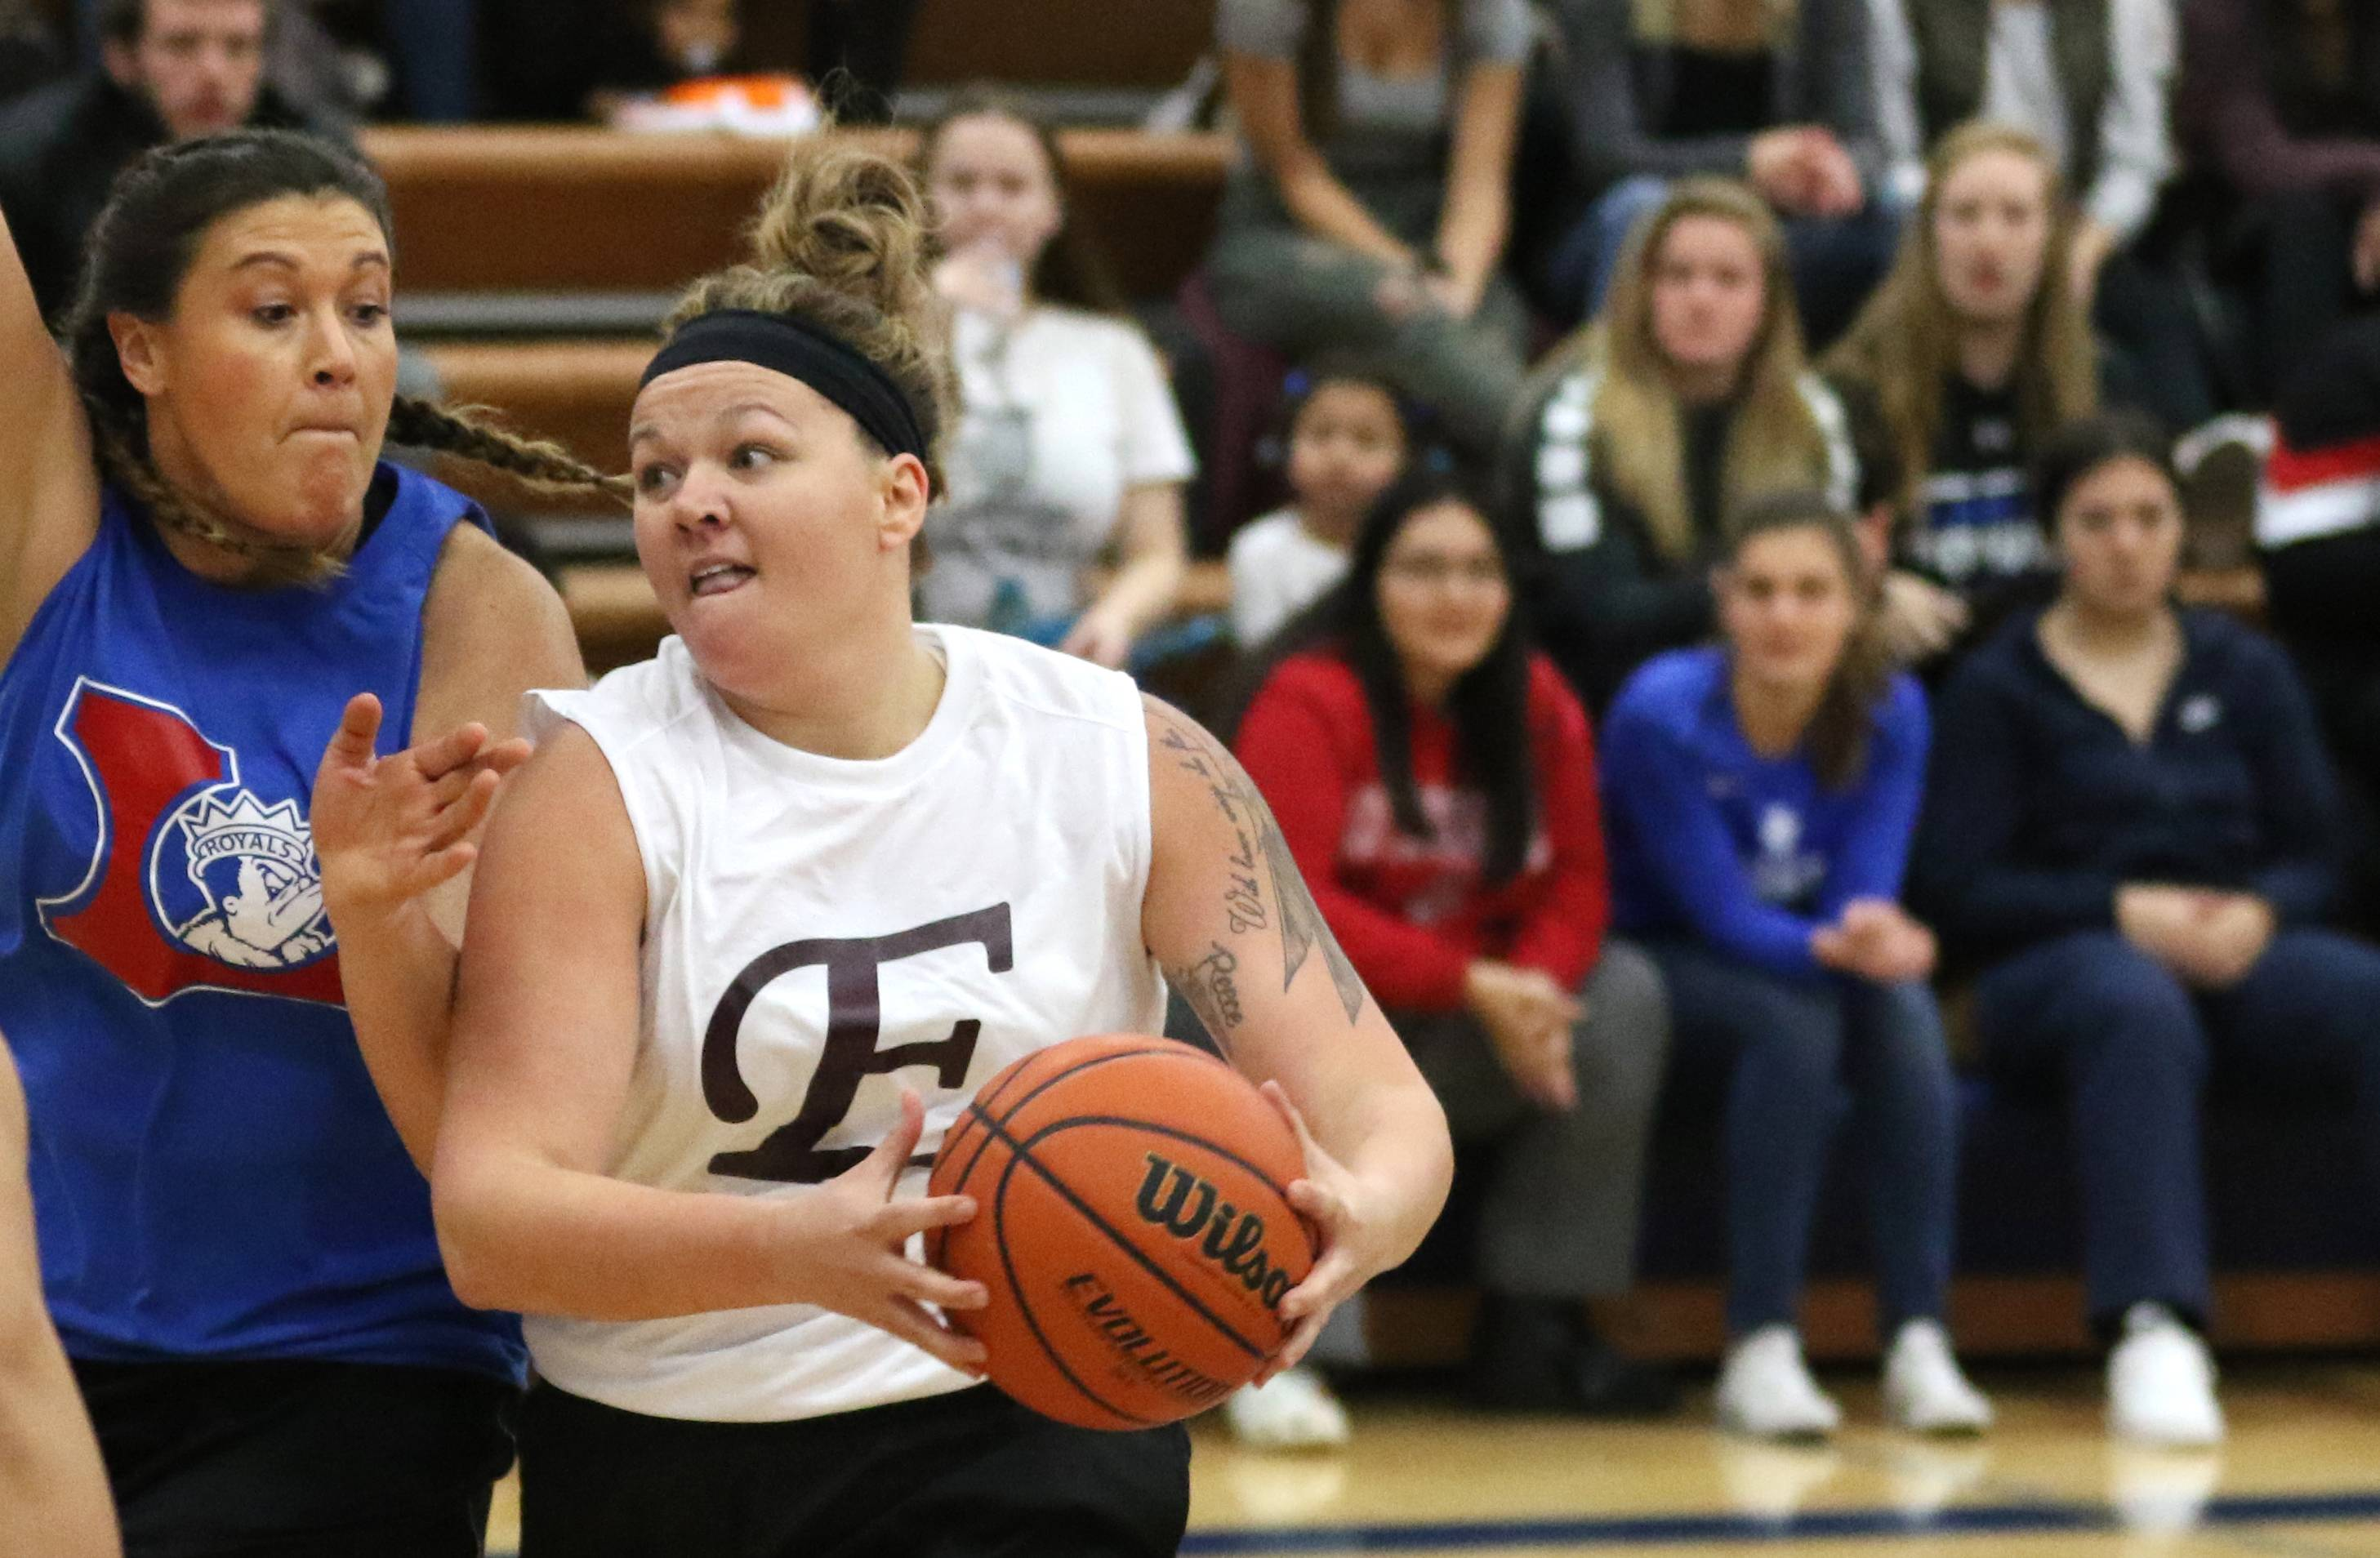 Elgin, Larkin women savor the opportunity to face each other again